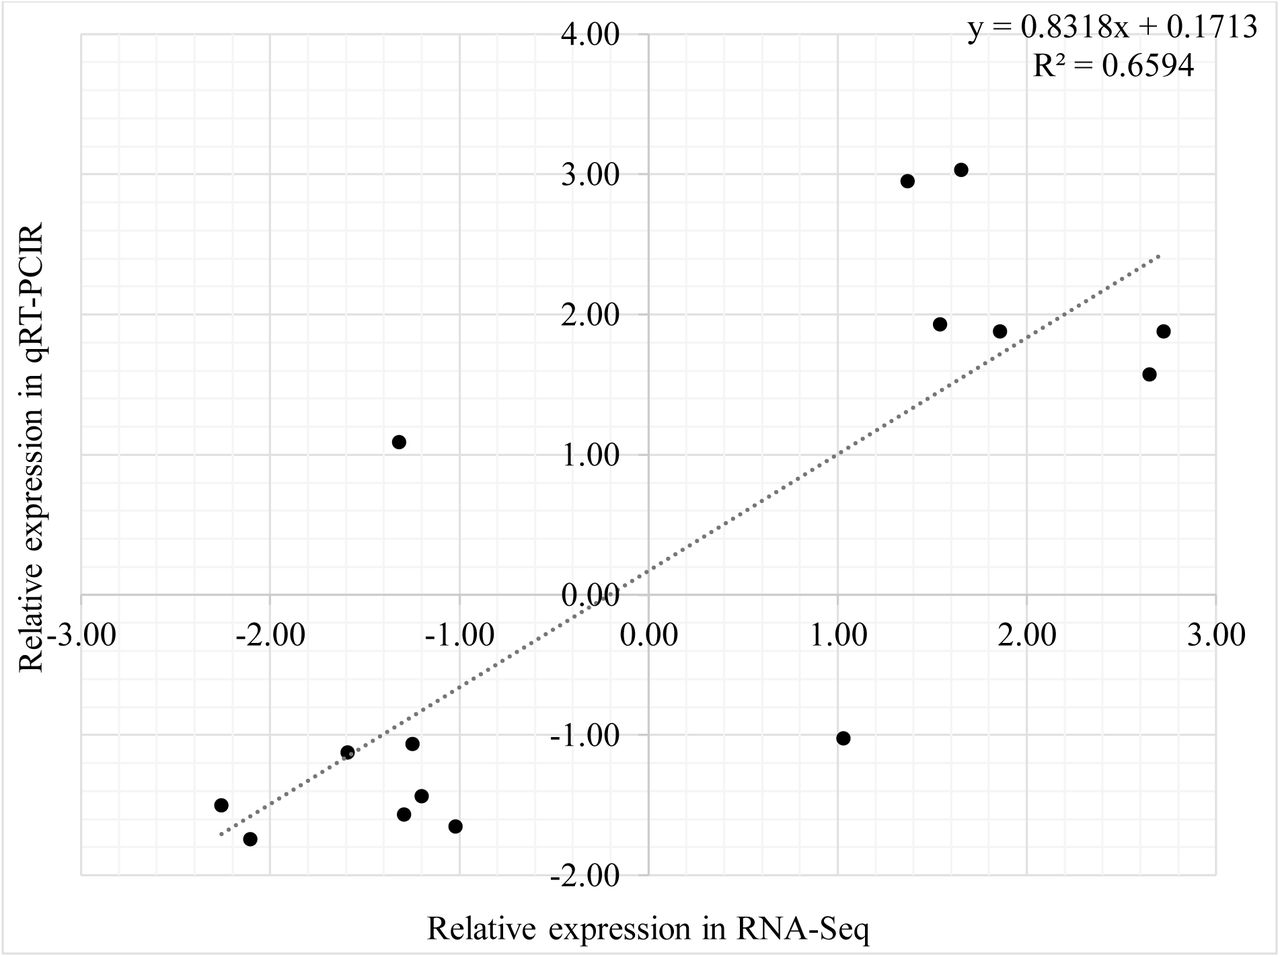 Scatter plot of the correlation between RNA-Seq and qRT-PCR expression for genes around the threshold cut-off (FC ±1.5). Verification of RNA-Seq data was performed on the same RNA for the following 15 genes: PA0652, PA0675, PA0762, PA0893, PA1270, PA1282, PA1430, PA2237, PA2426, PA3385, PA3410, PA3462, PA3899, PA5261, and PA5344.